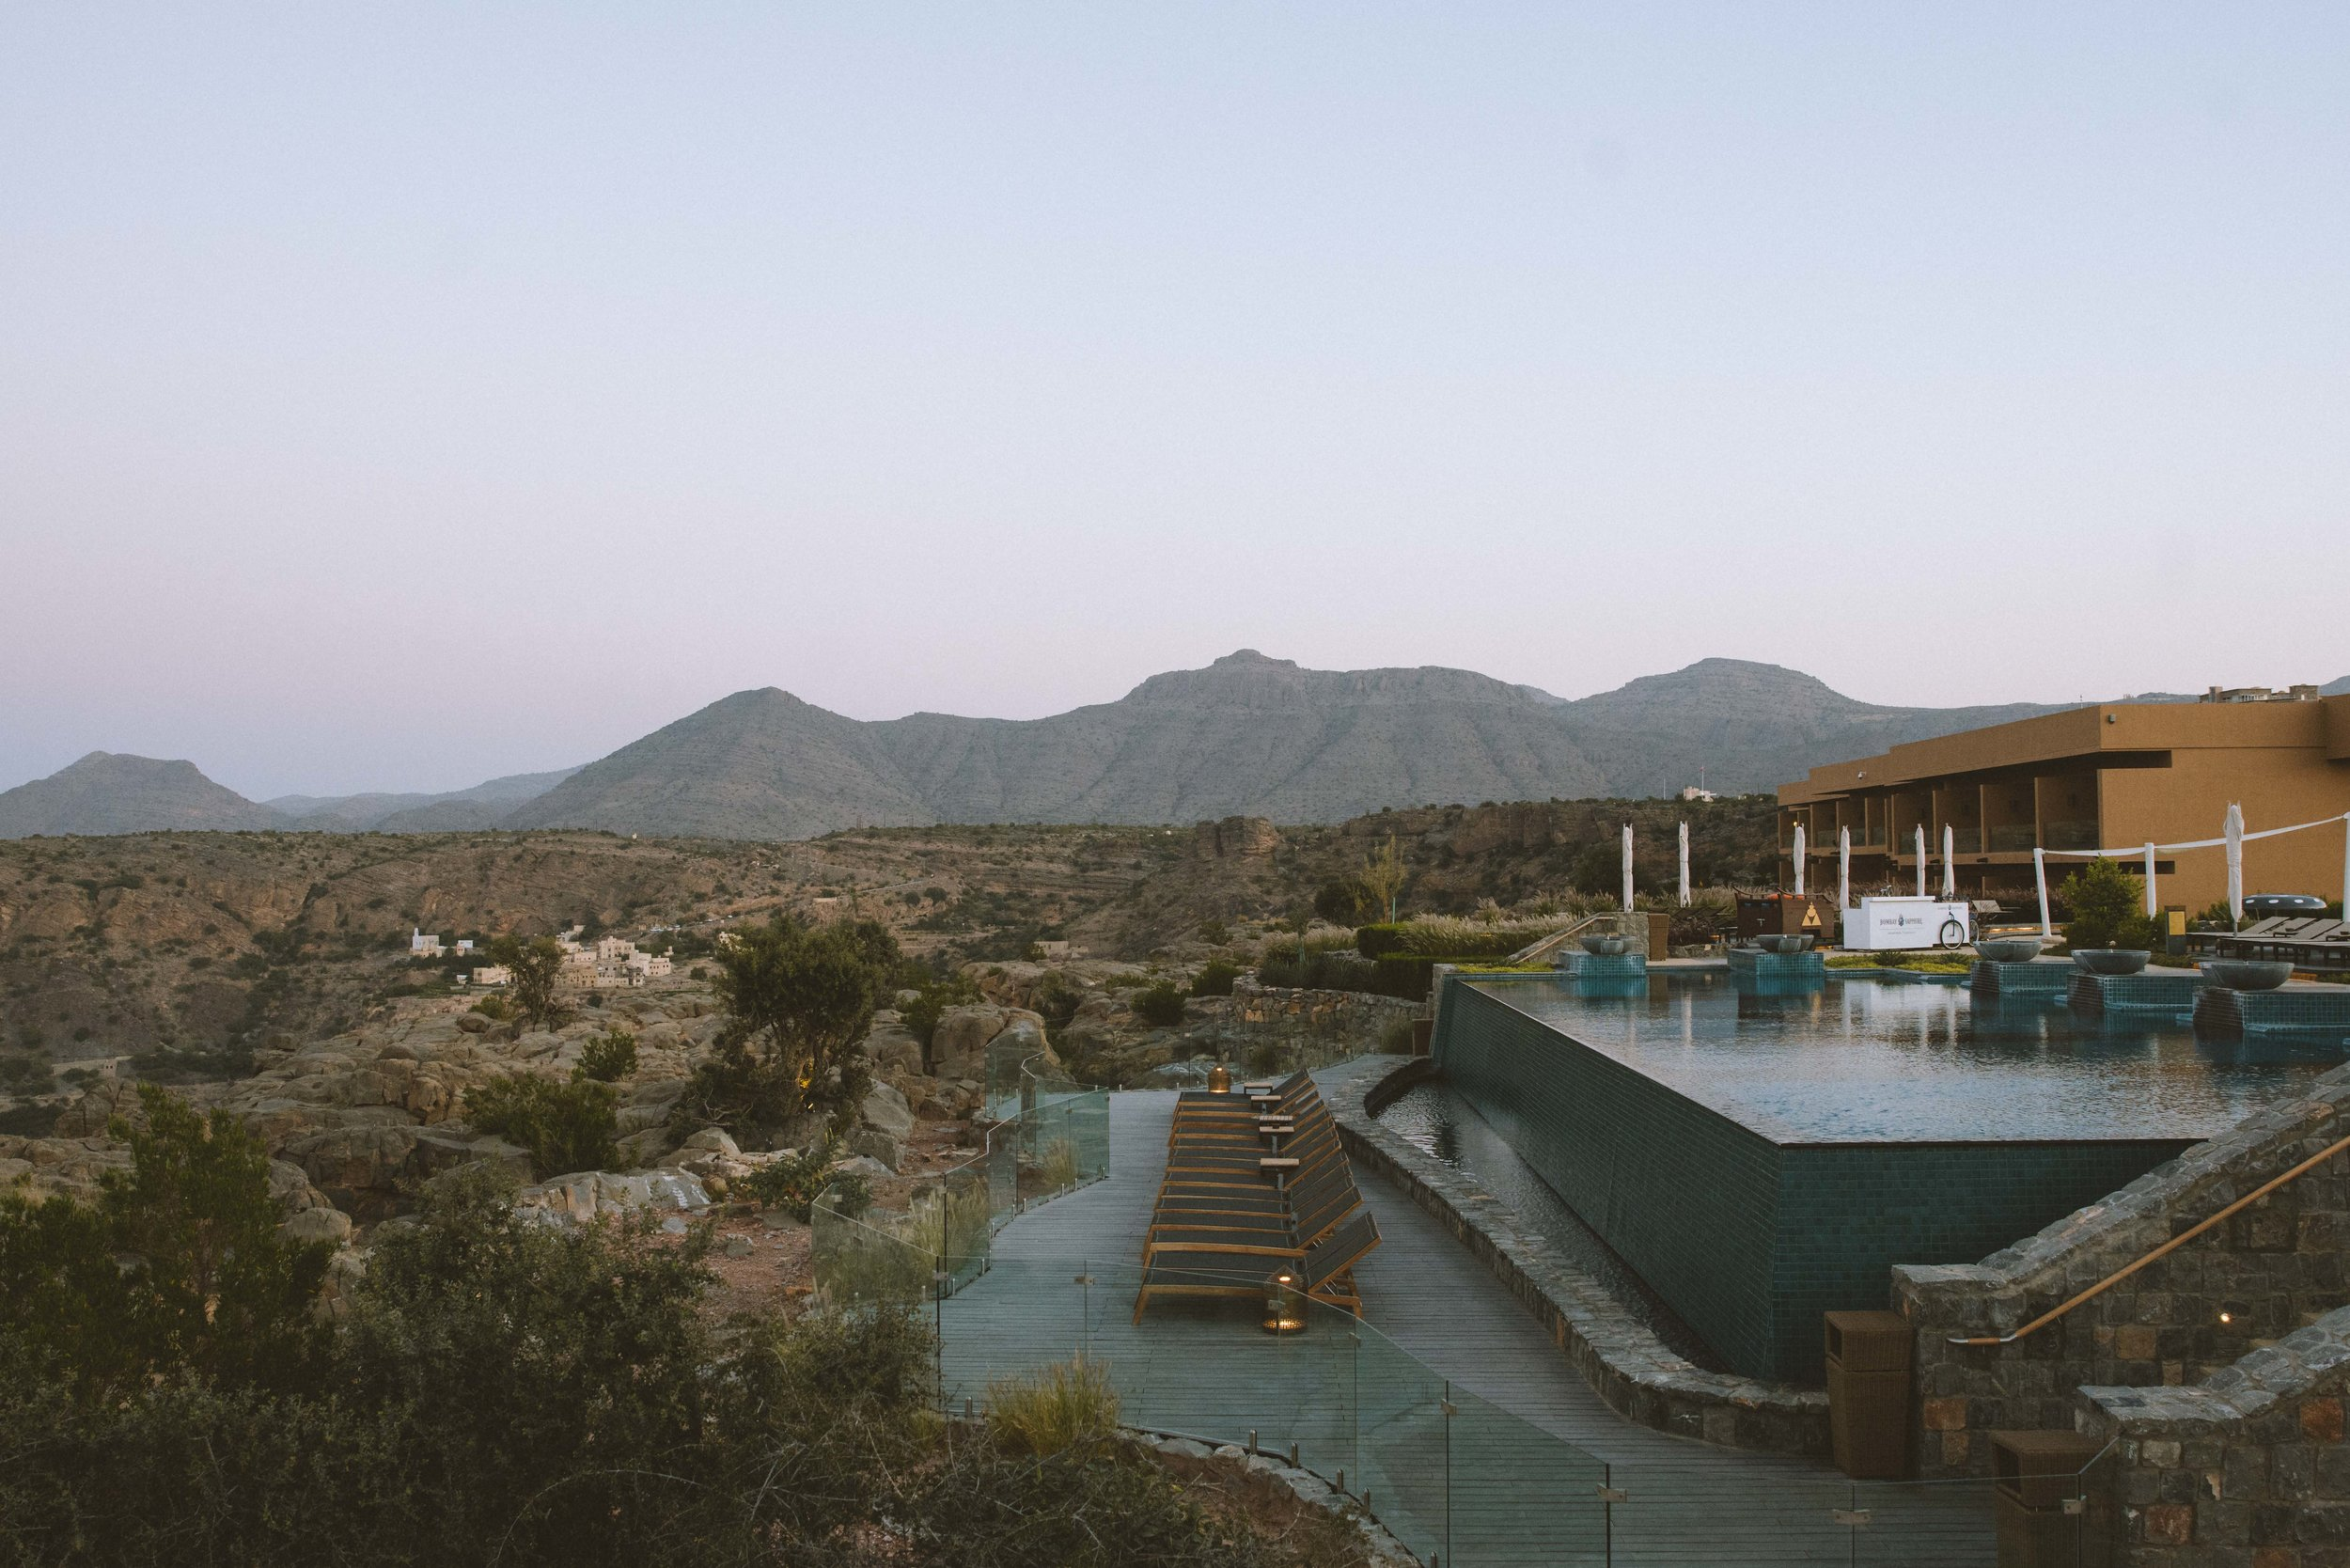 infinity-pool-luxury-hotel-oman